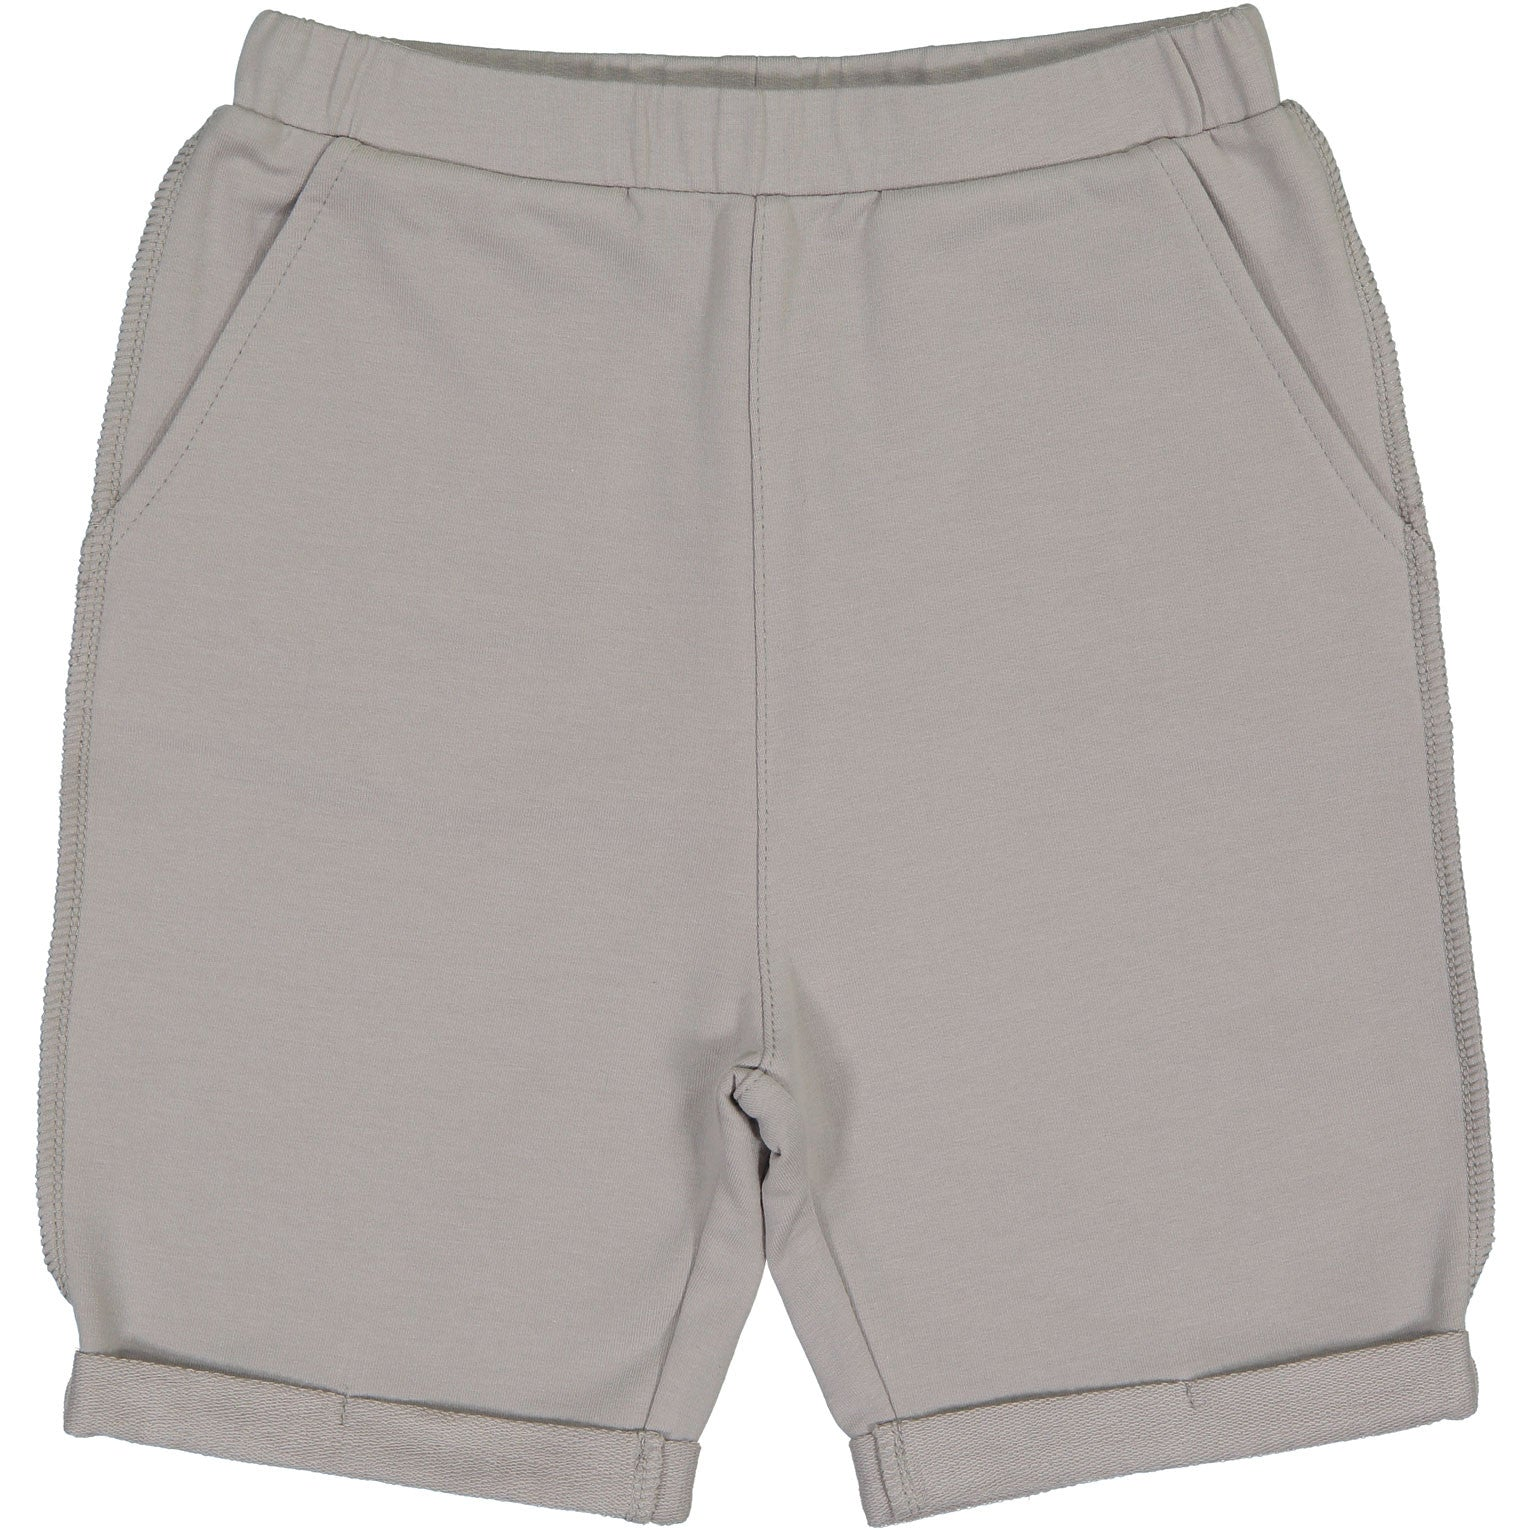 Coco Blanc Ash Terry Shorts - Ladida